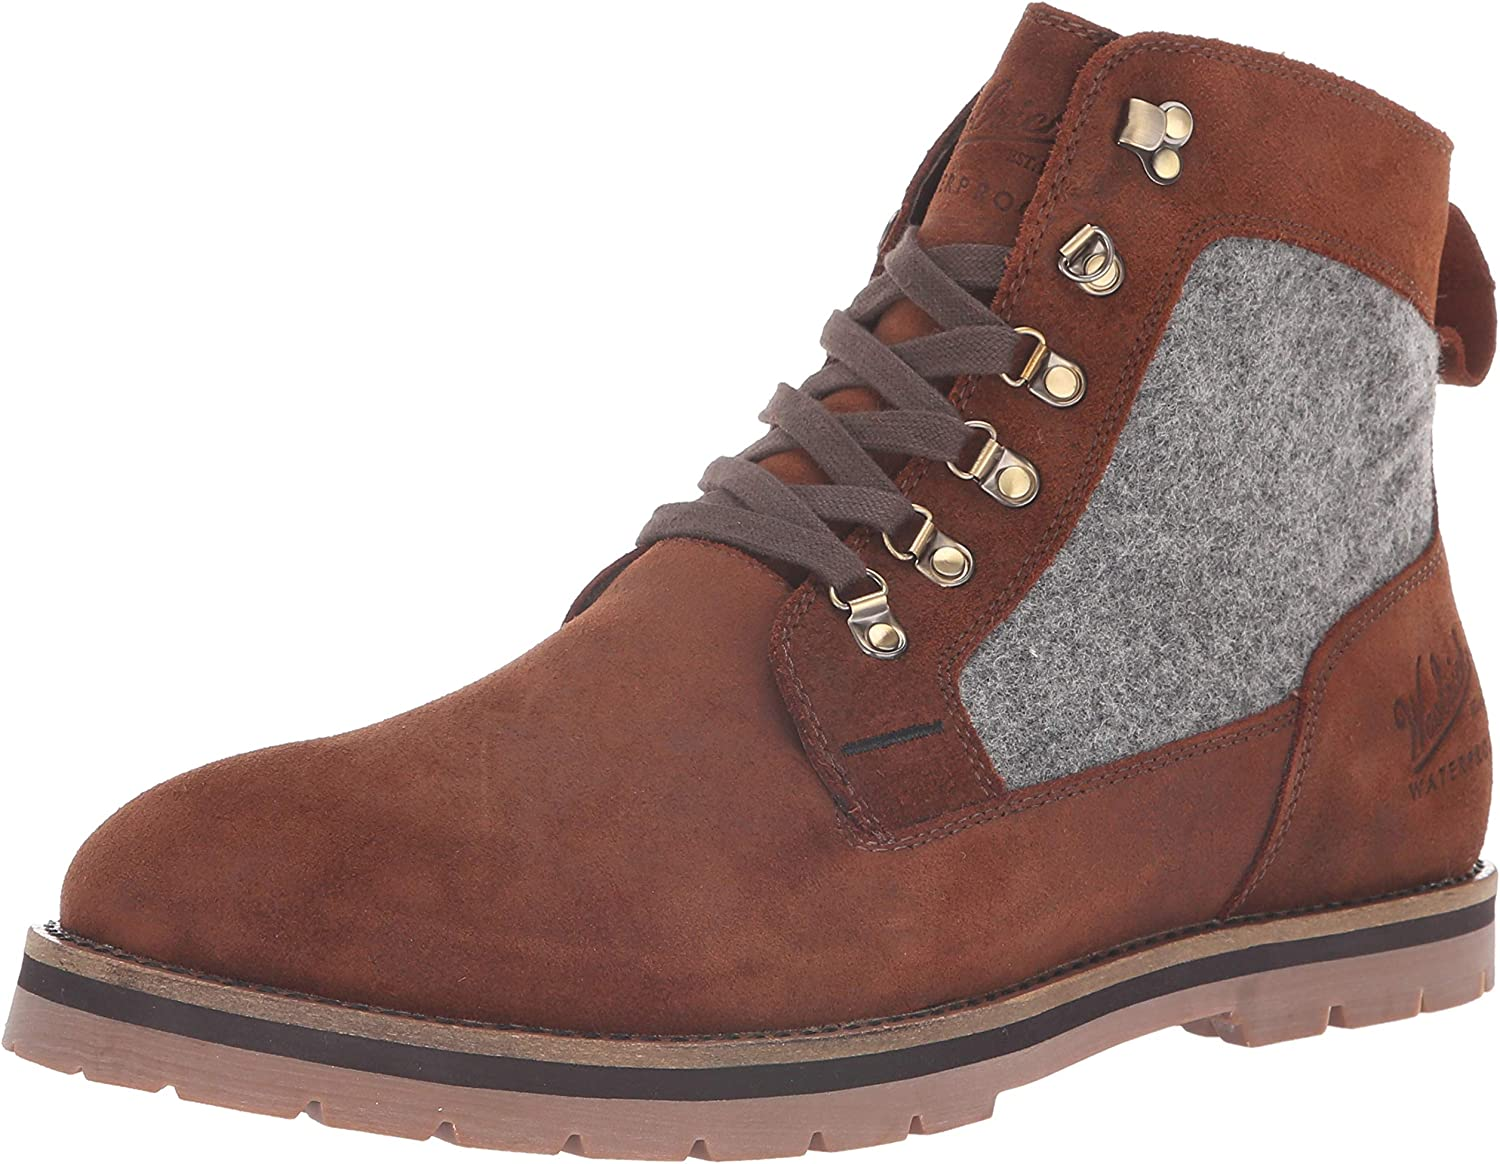 Woolrich Men's Wrld Dscvr Fashion Boot,